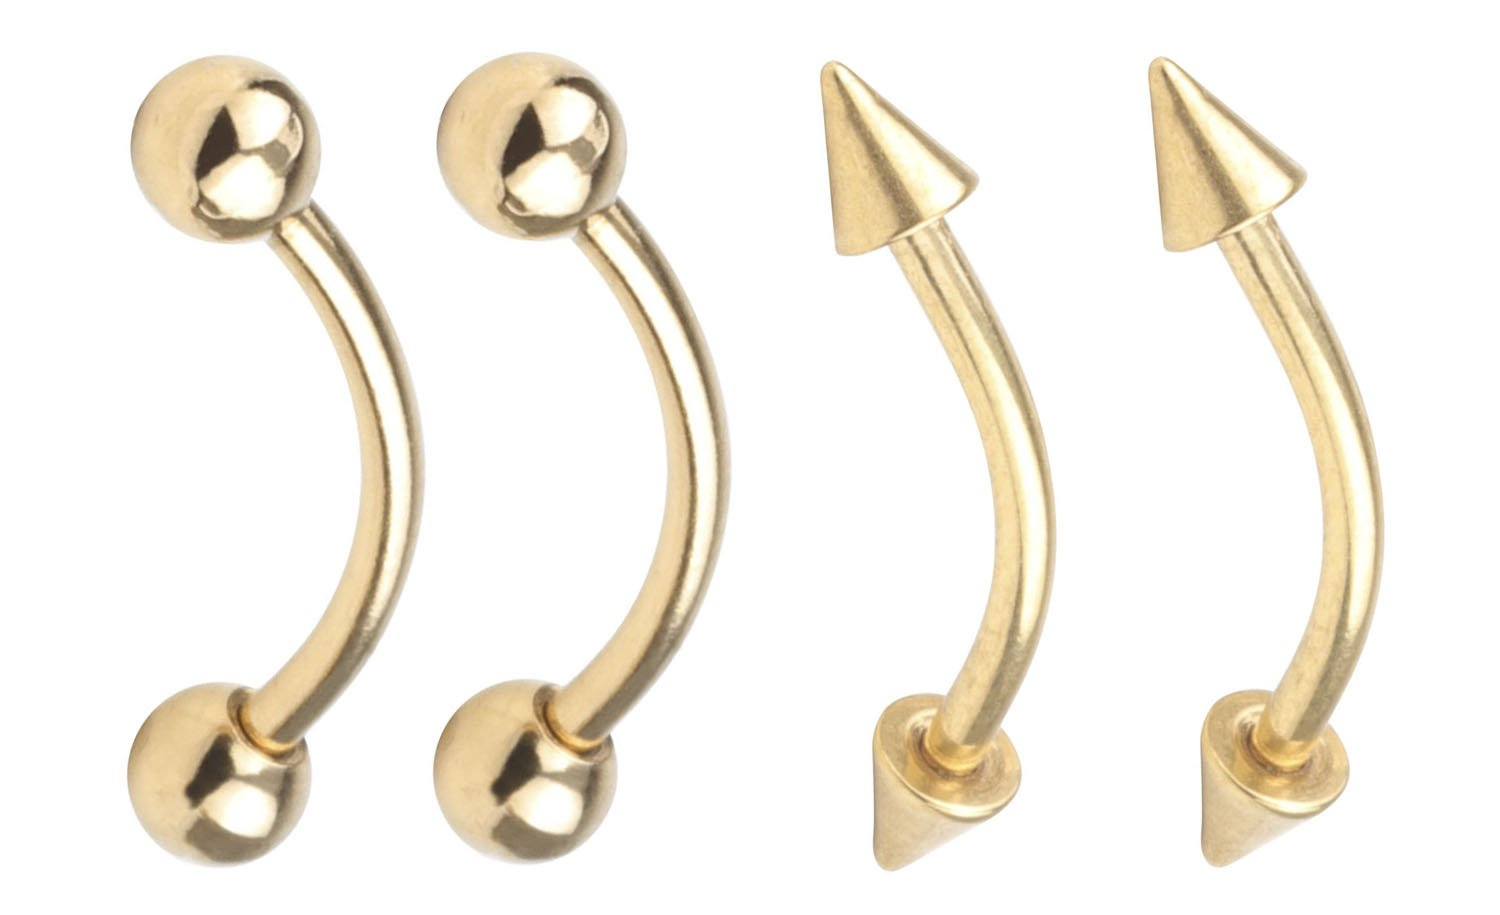 2 Pair Gold 16G 10mm Surgical Steel Spike & Ball Eyebrow Ear Navel Belly Lip Ring Body Piercing Jewelry A+ CM